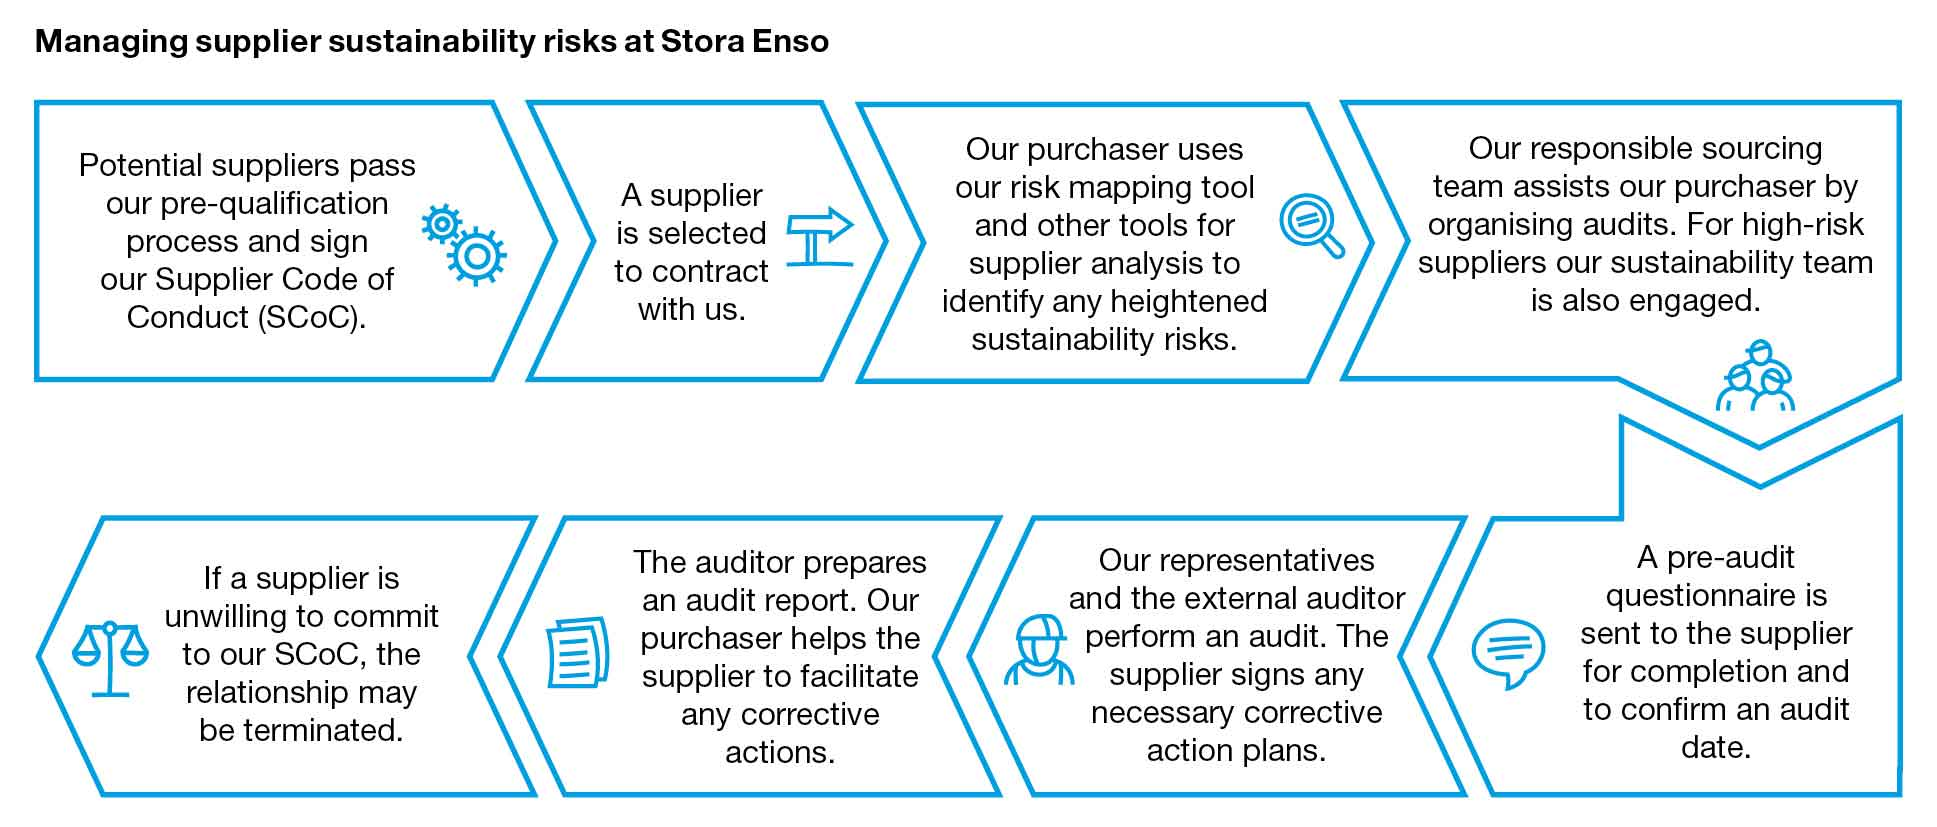 Supplier sustainability risks at stora enso